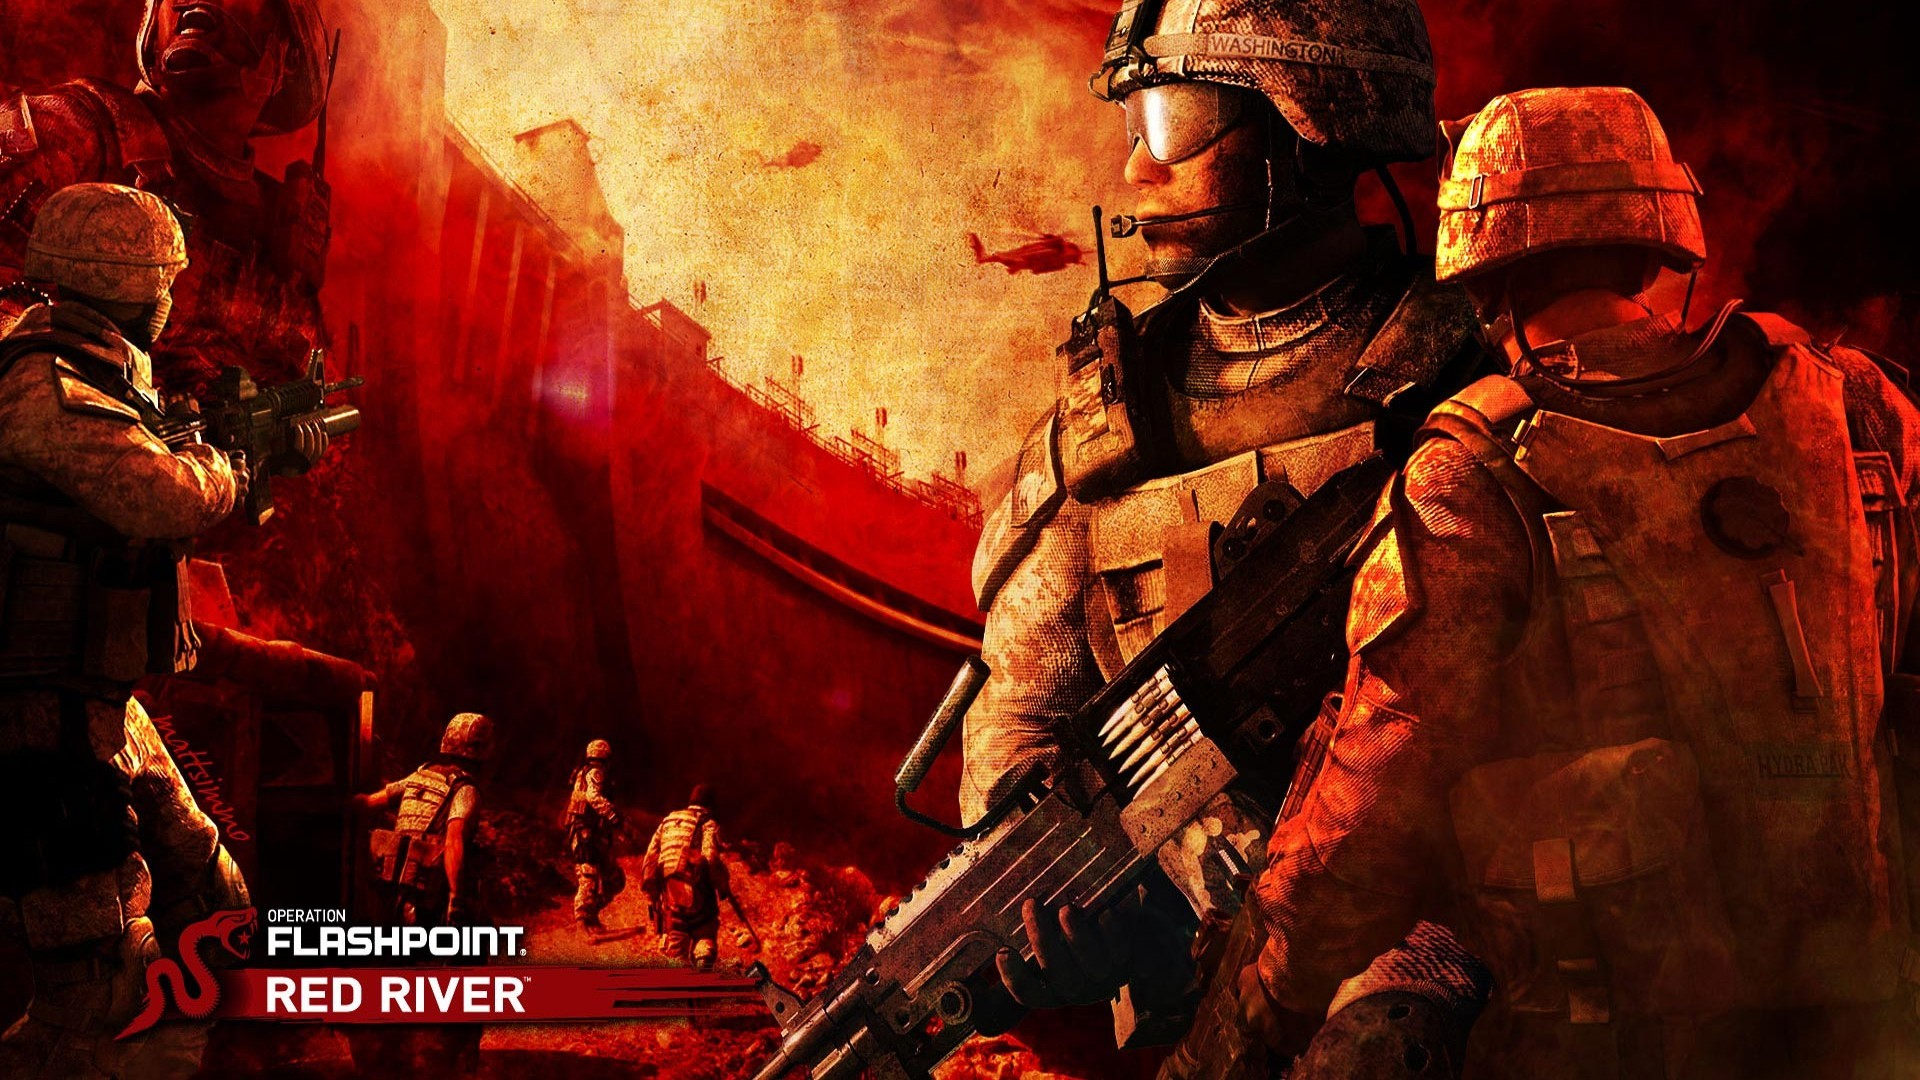 video games operation flashpoint HD Wallpaper